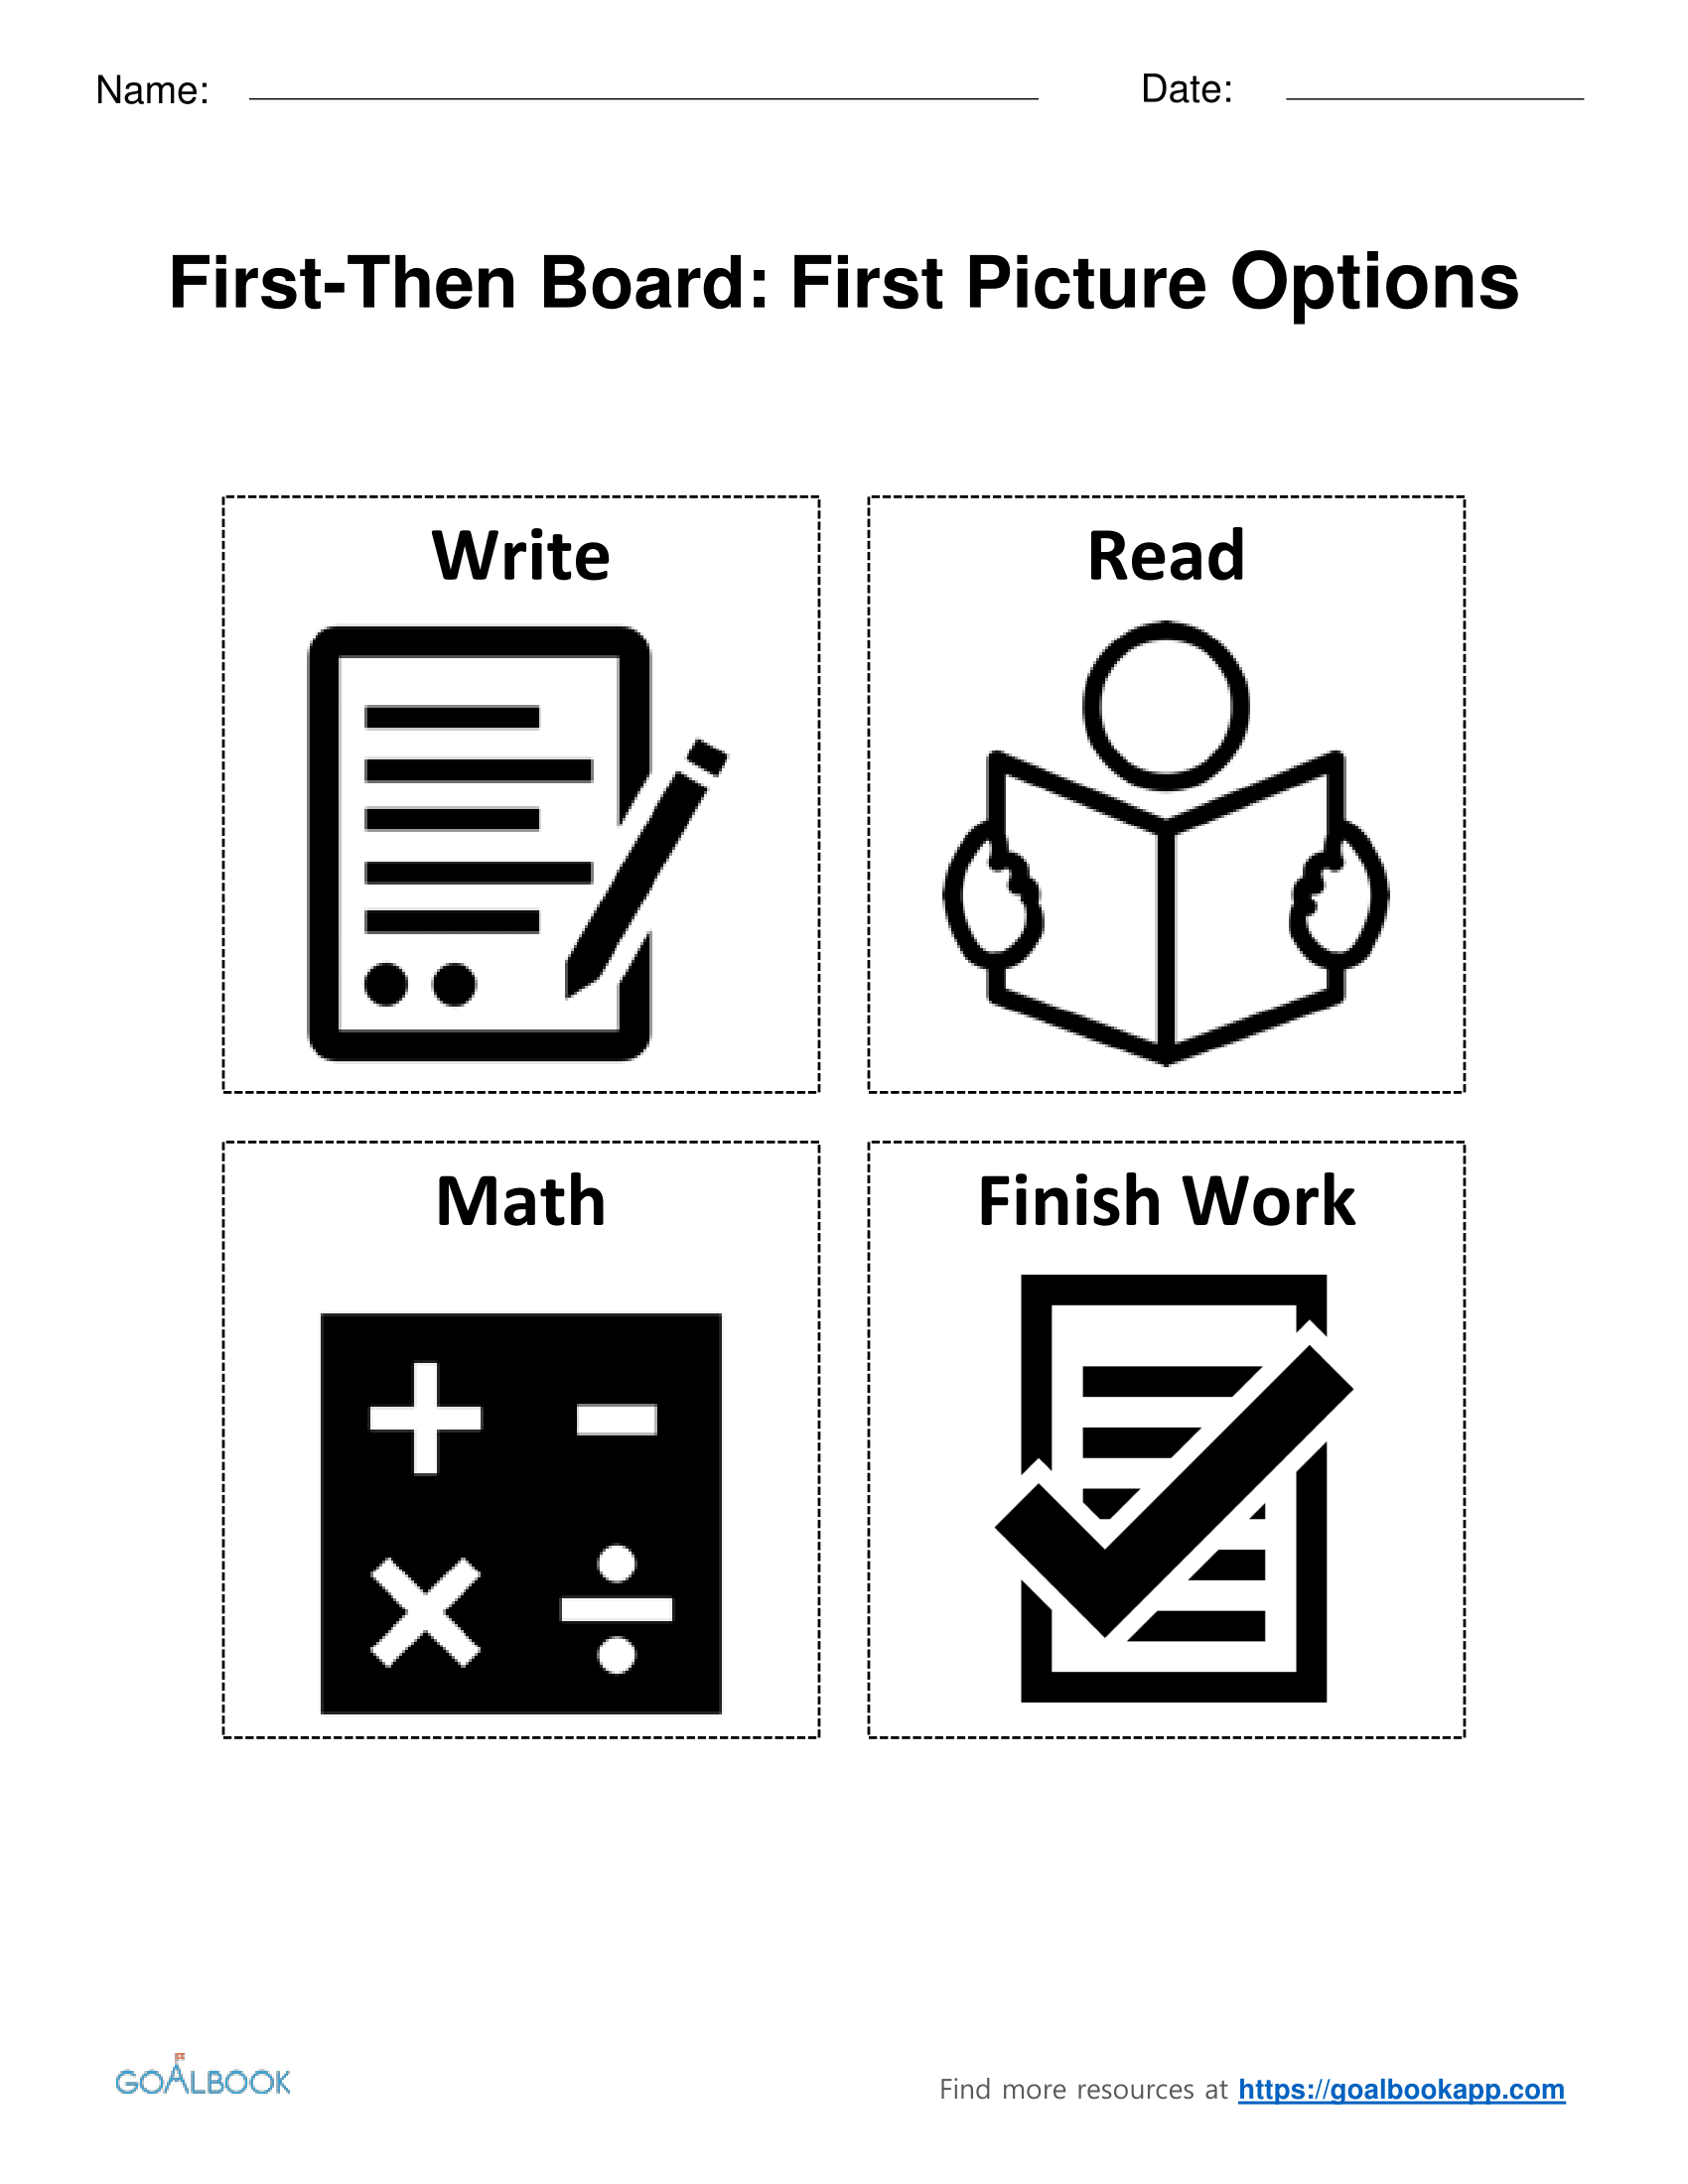 First-Then Board Picture Choices